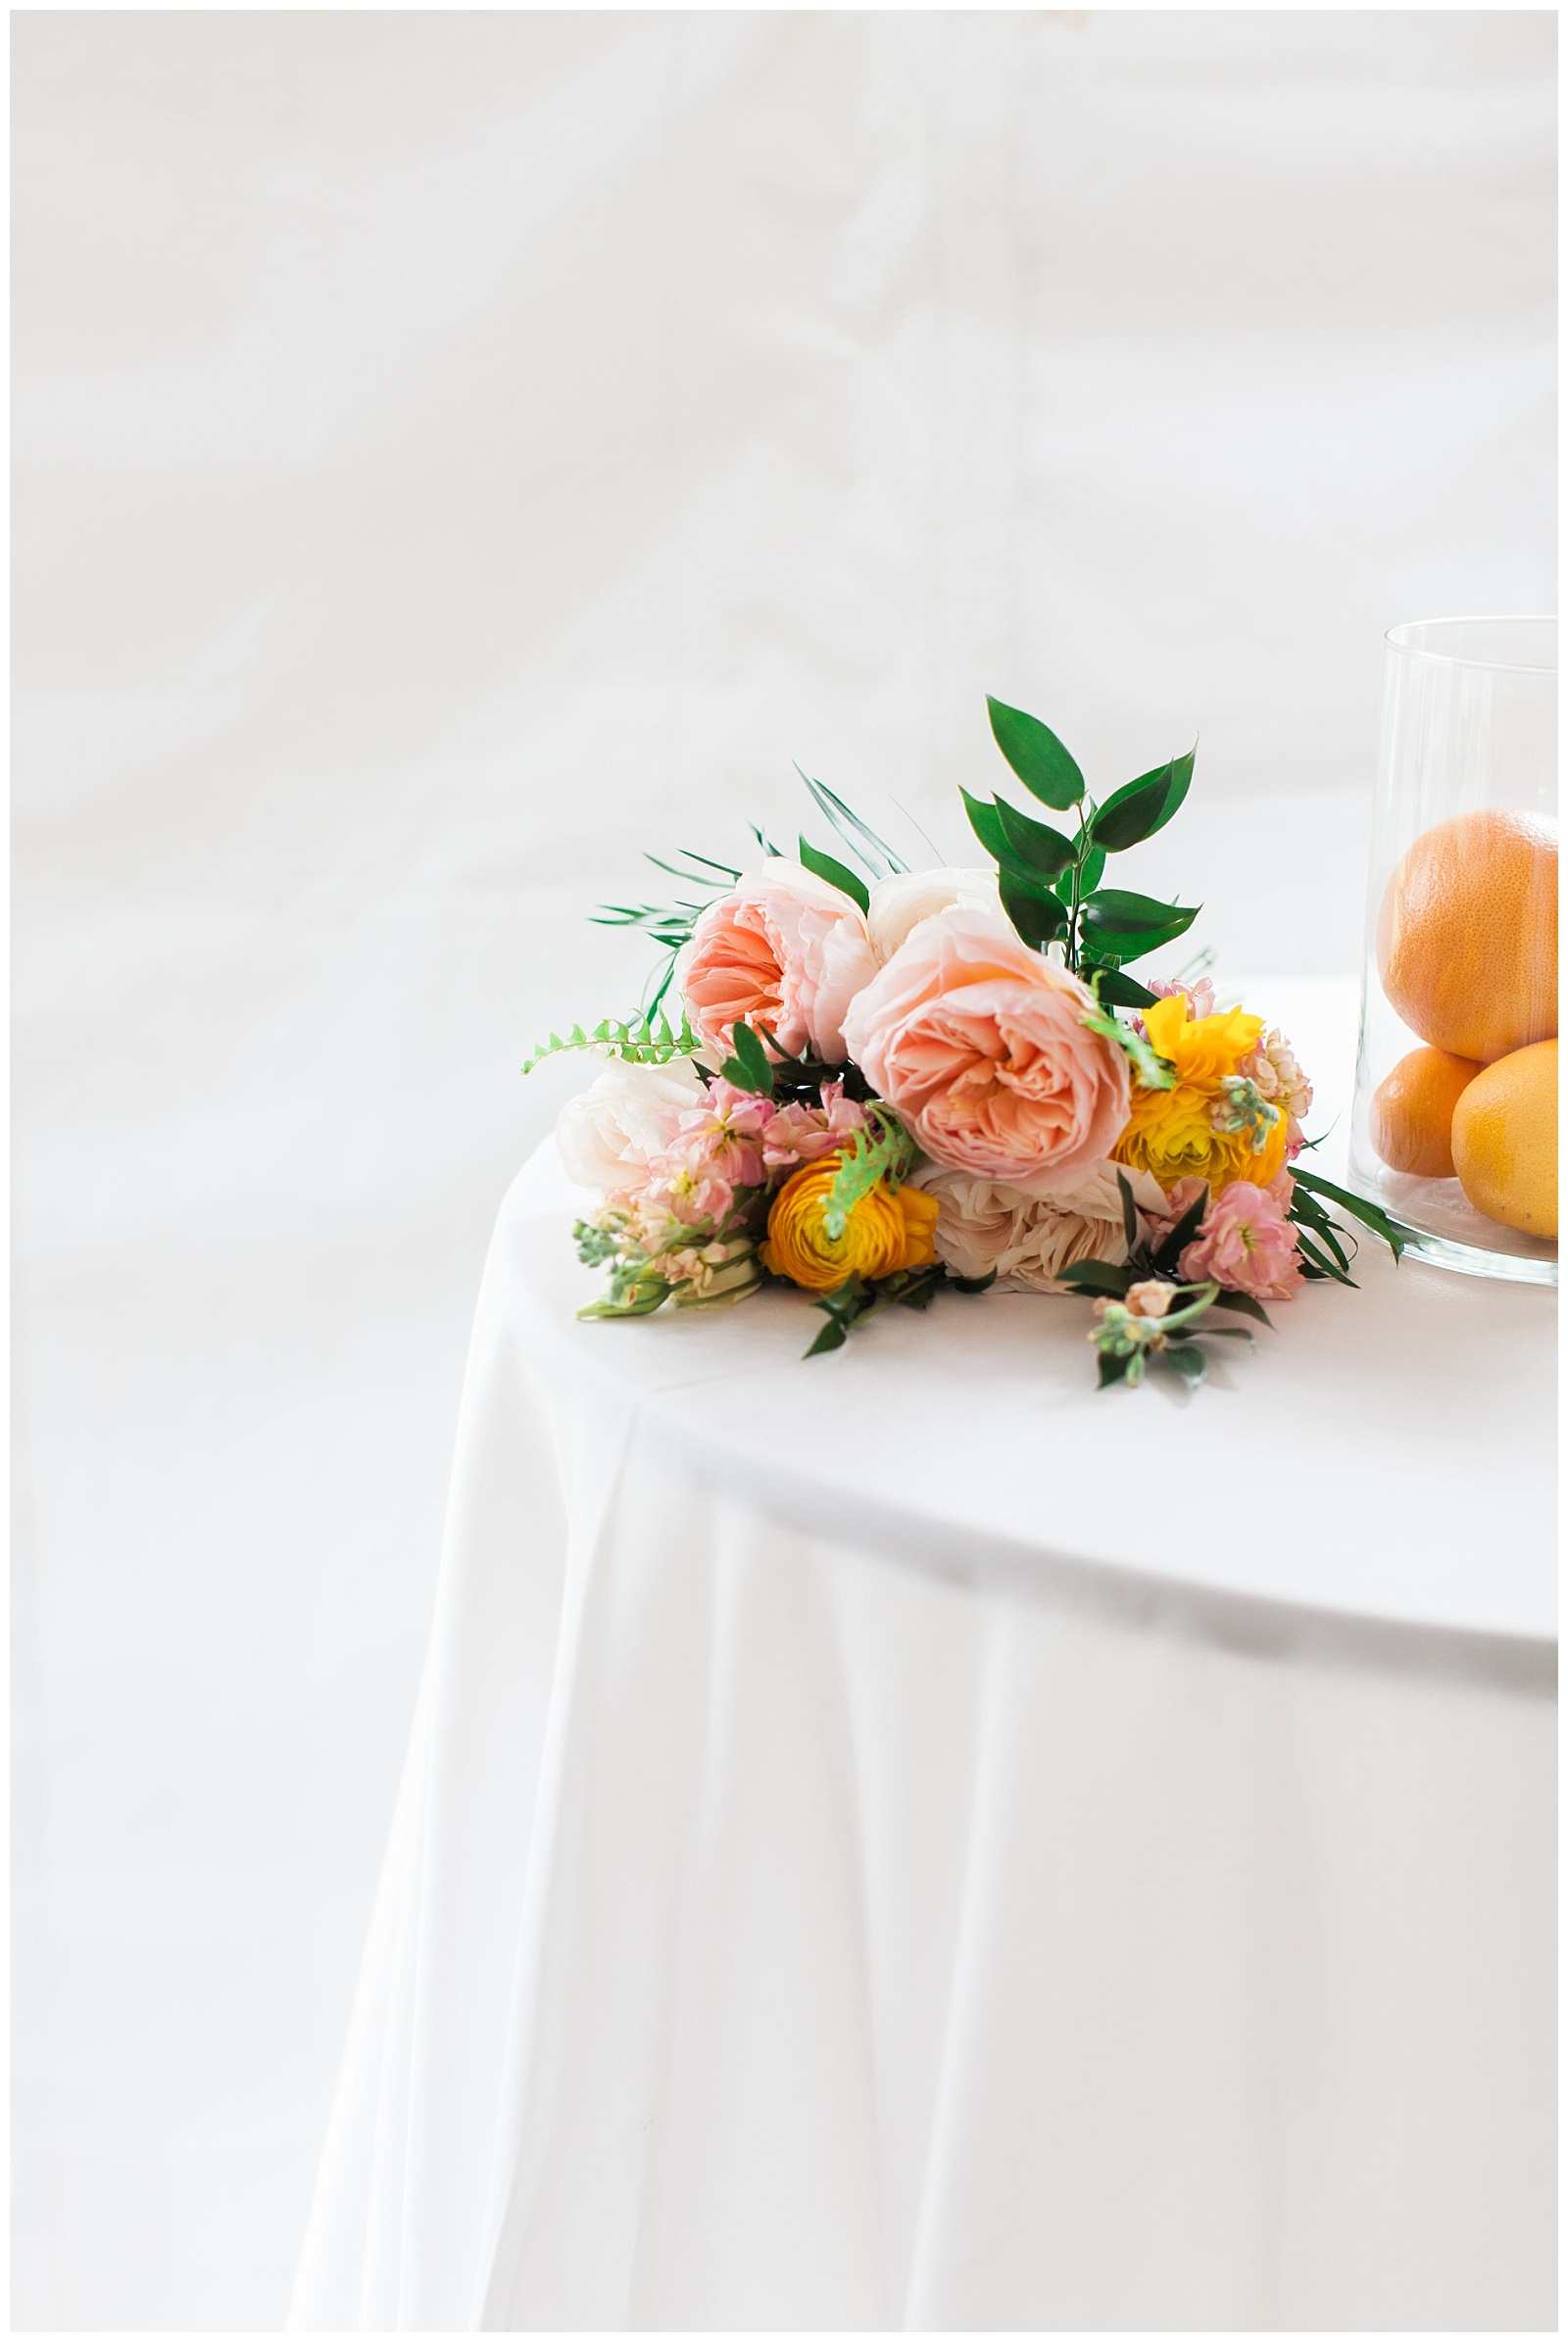 Centerpiece detail shot of floral bouquet and lemons on white table at Guelph Ontario Wedding | Ontario Wedding Photographer | Toronto Wedding Photographer | 3photography